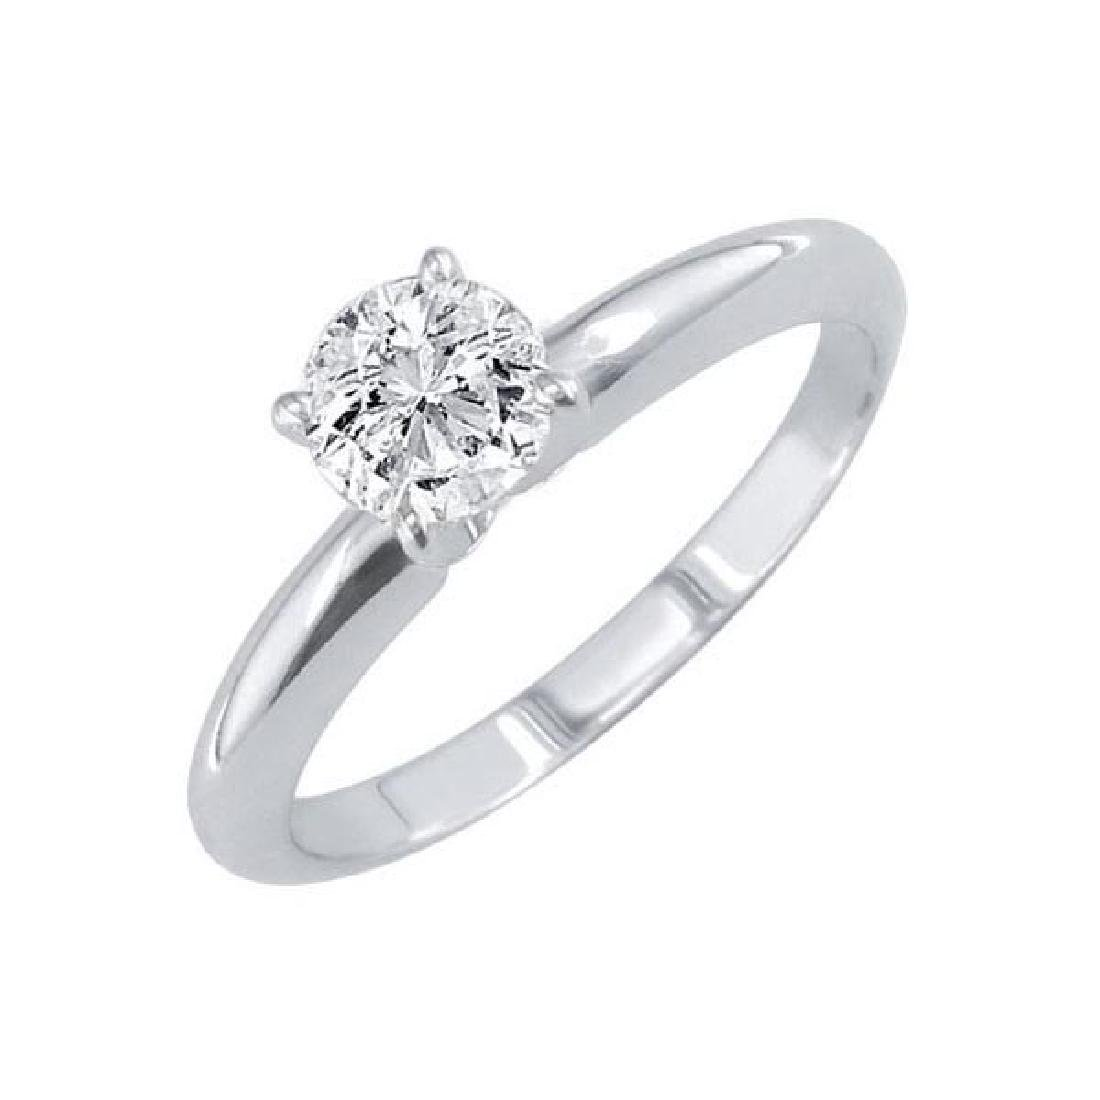 Certified 0.81 CTW Round Diamond Solitaire 14k Ring D/S